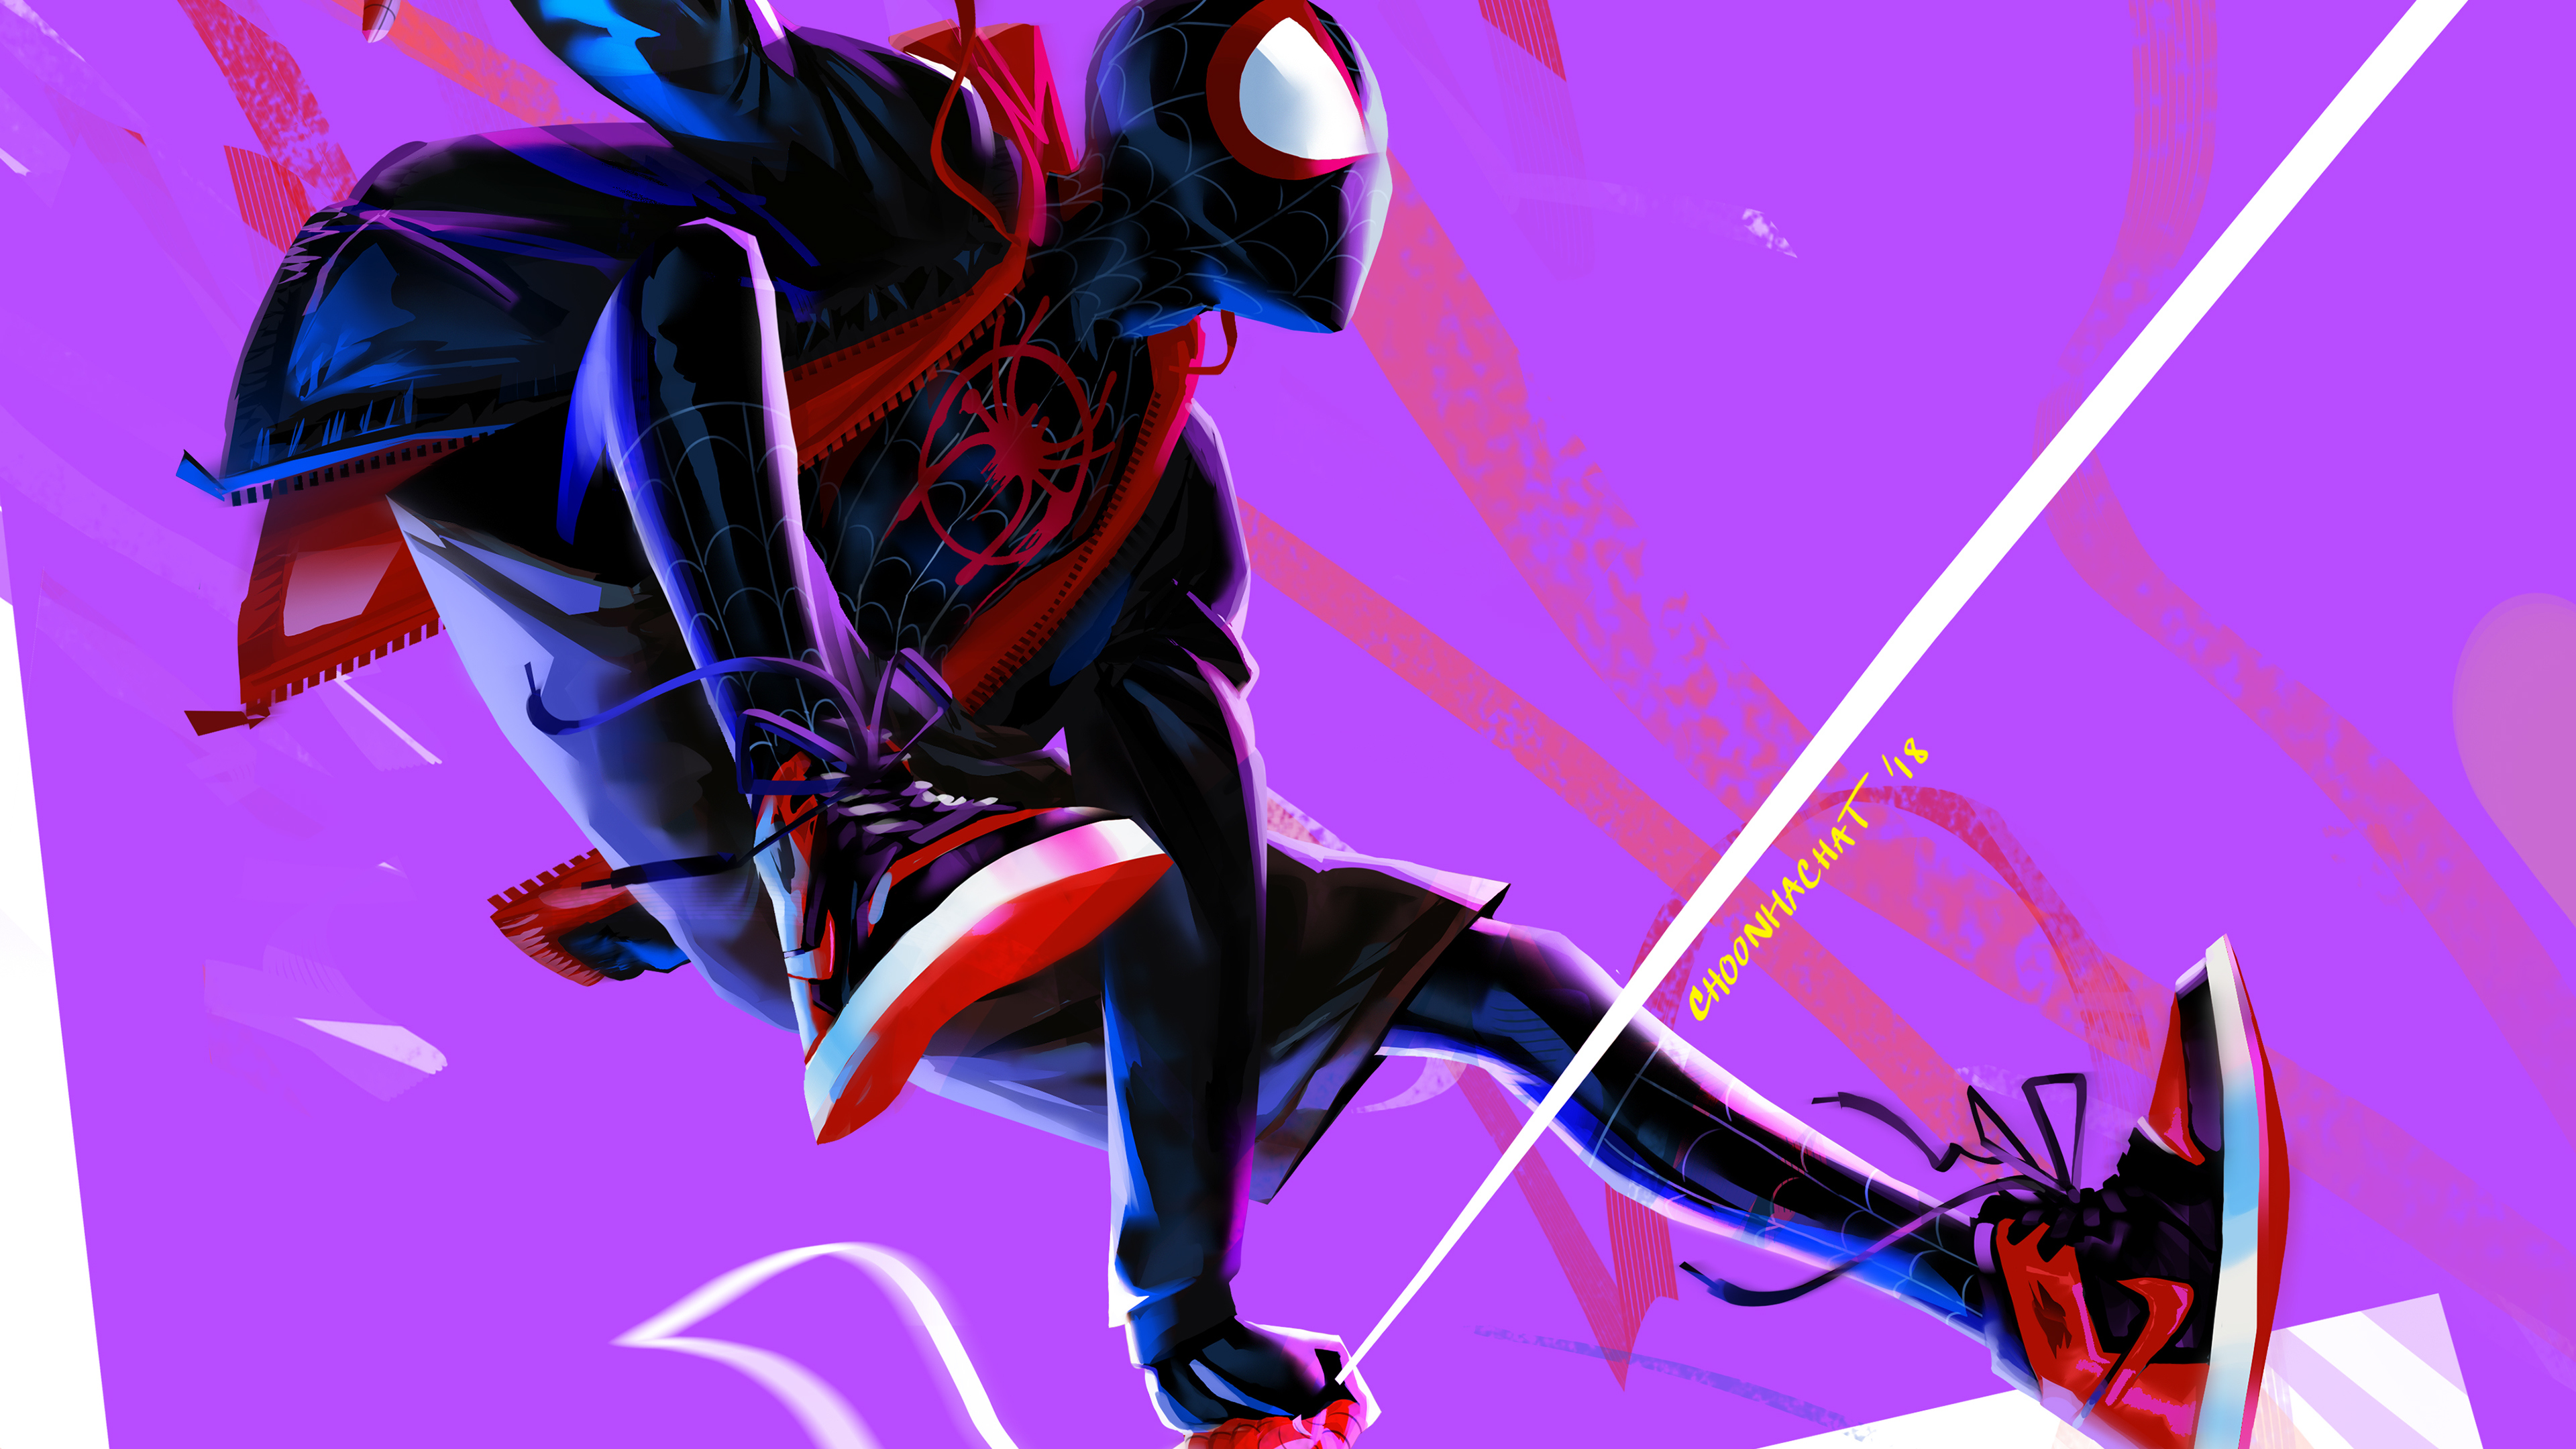 Wallpaper 4k Miles Morales In Spider Man Into The Spider Verse 4k